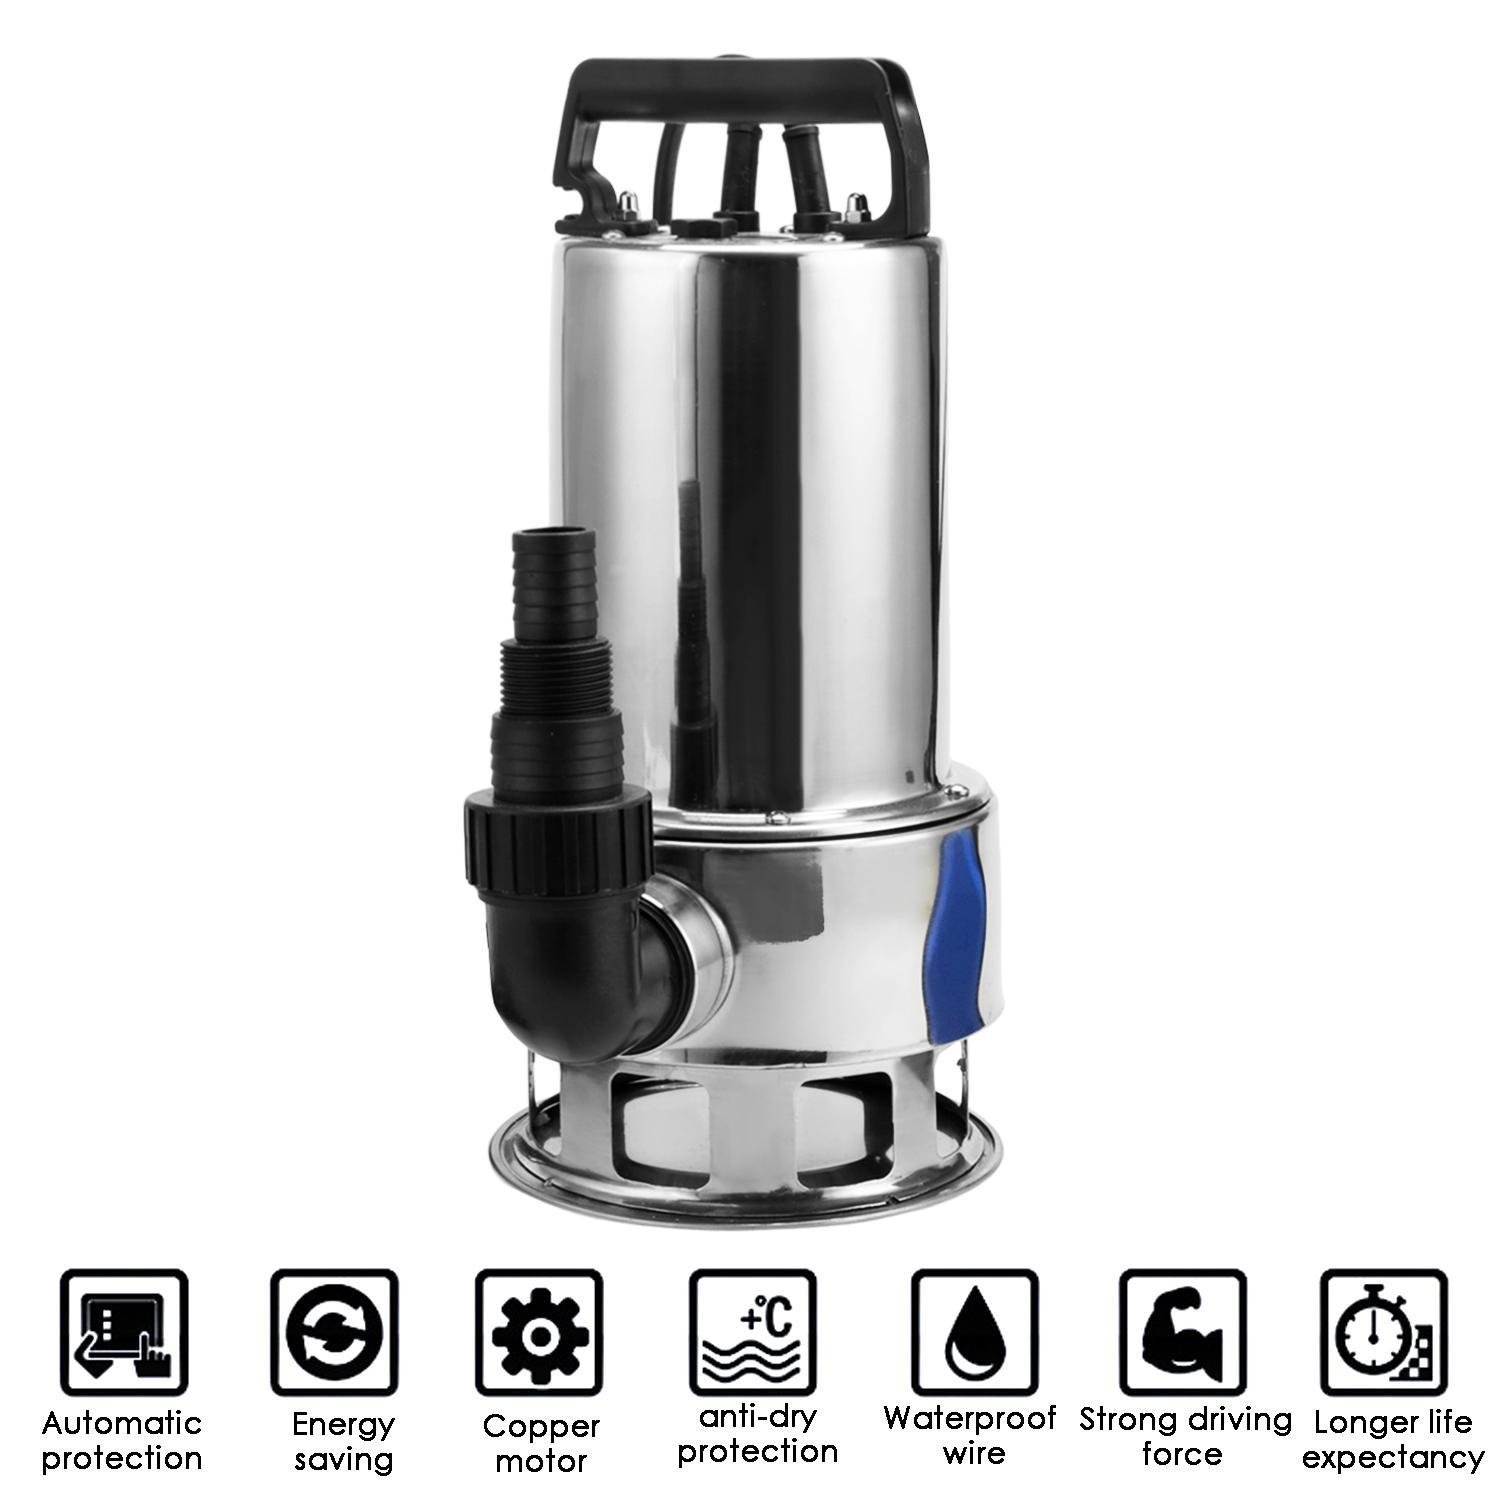 ThinIce 1.5 HP Stainless Steel Submersible Sump Pump Clean Dirty Water Pump with 15ft Cable and Float Switch 1100W (US STOCK) by ThinIce (Image #4)